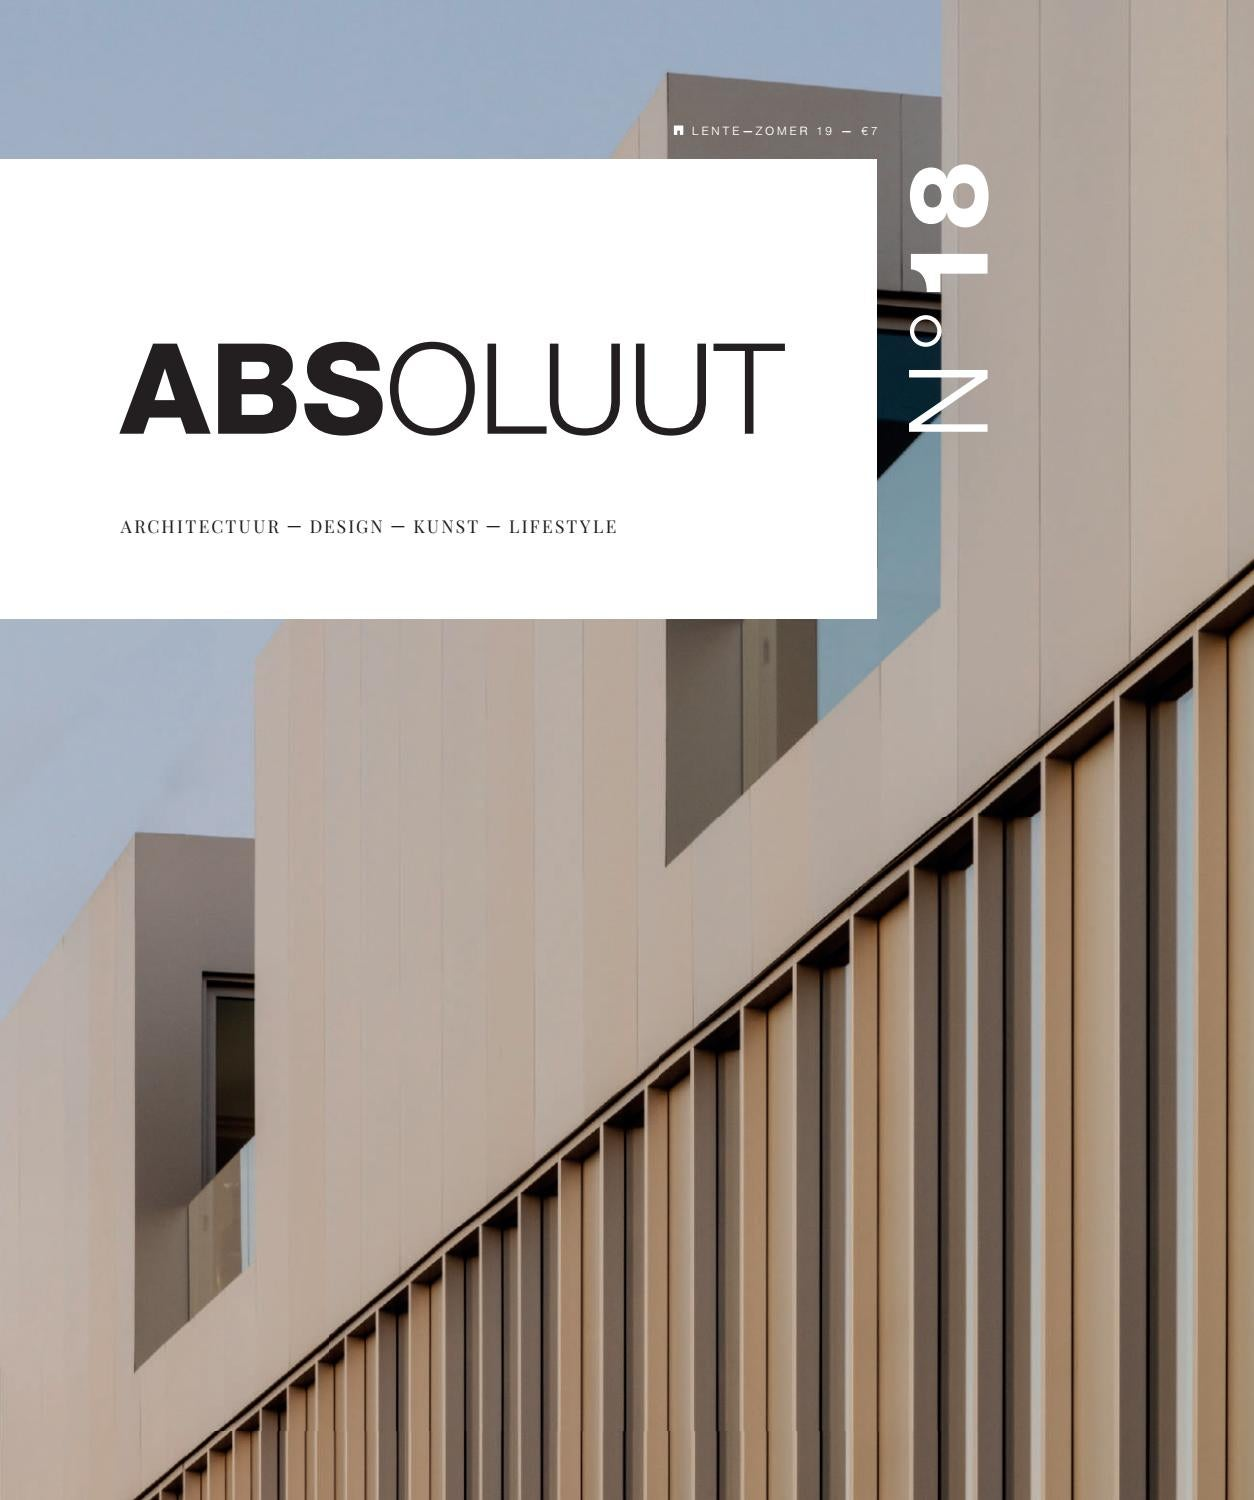 Absoluut 18 By Absbouwteam Issuu